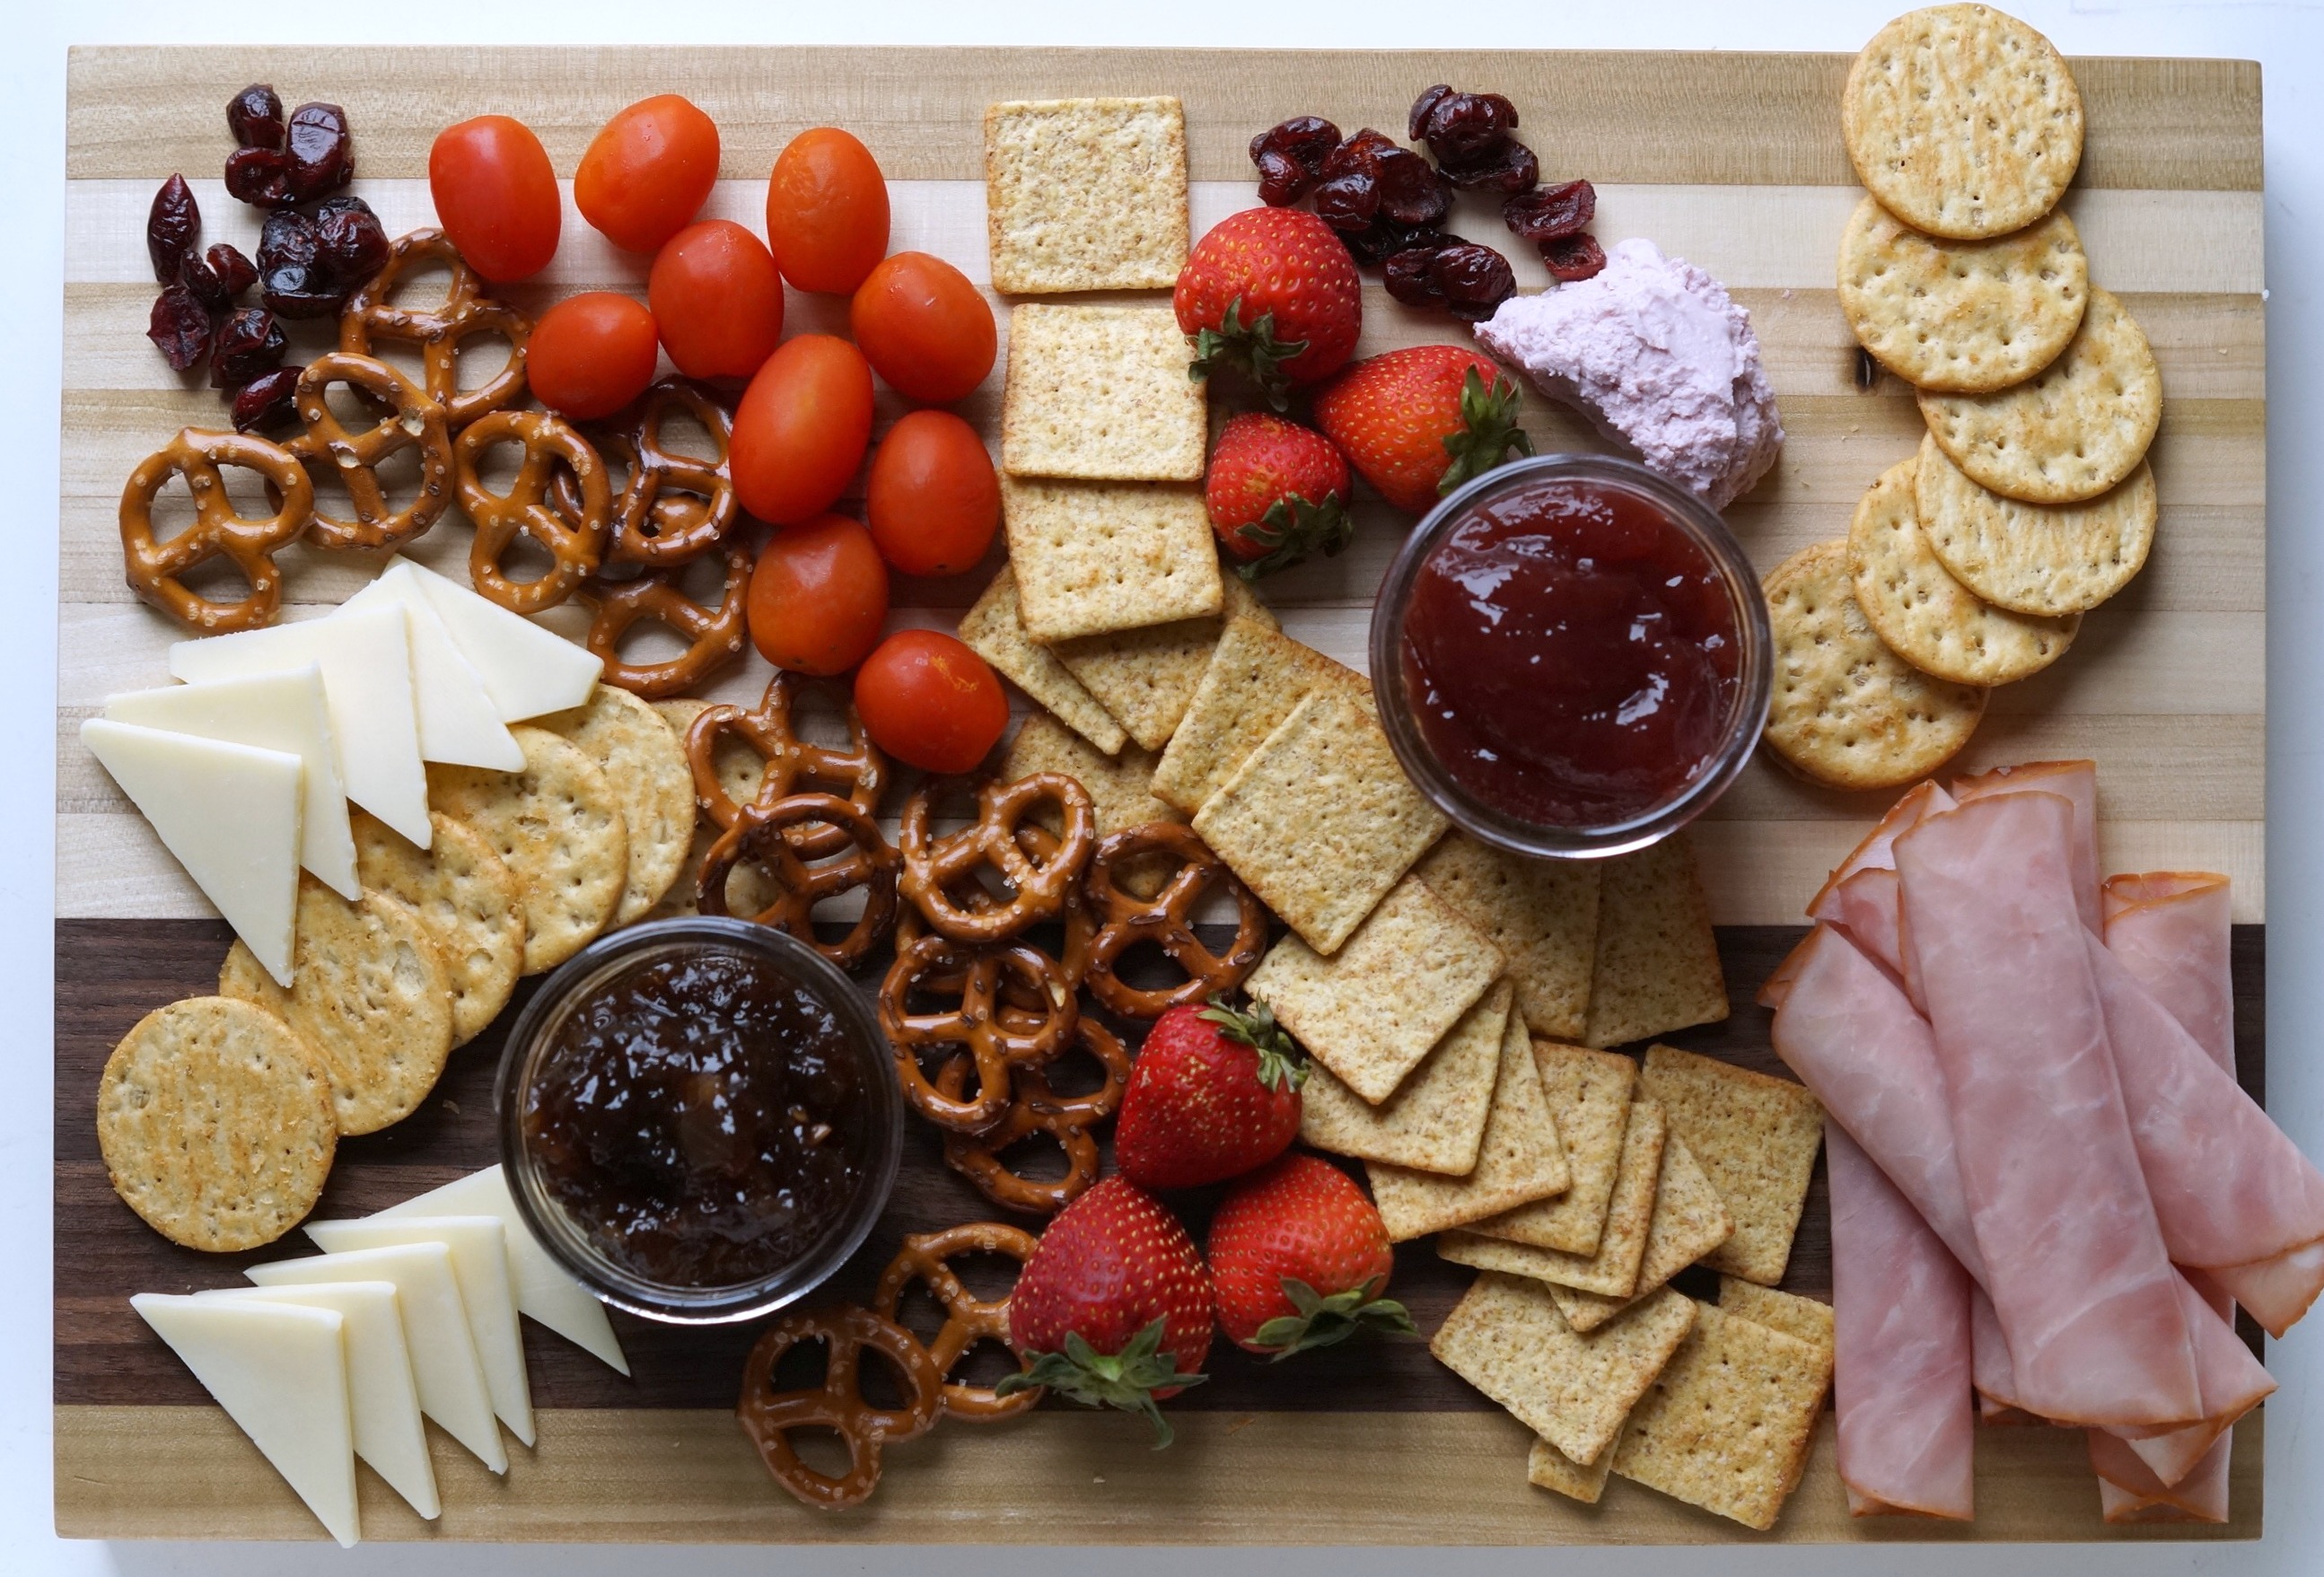 Looking for an easy back to school snack for your kids? Make this Charcuterie Board for Kids with #EckrichFlavor #AskForEckrich AD